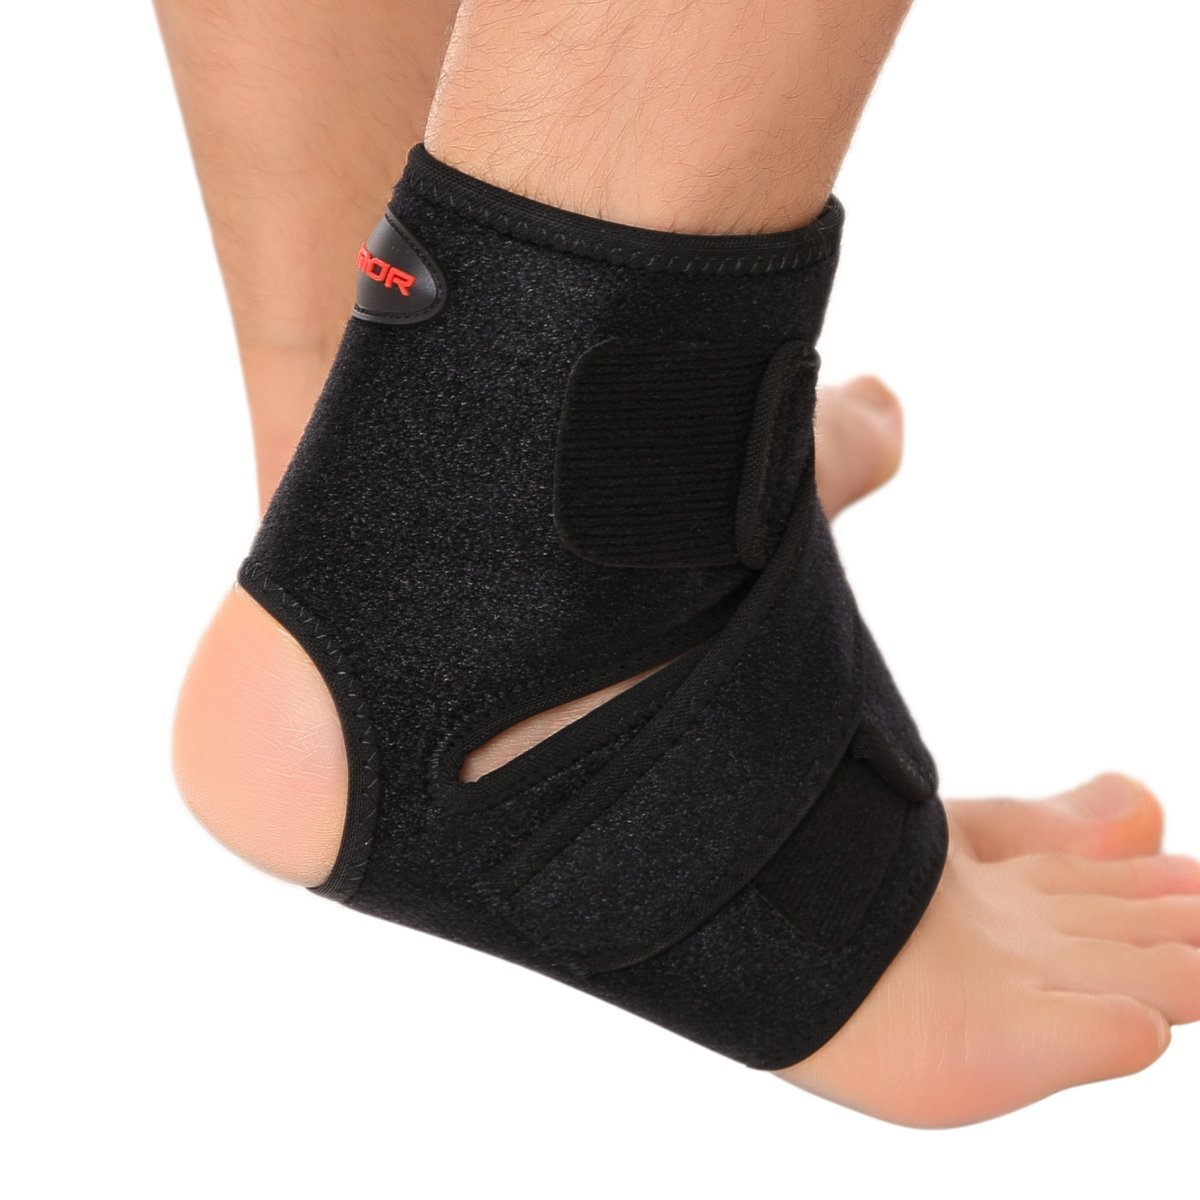 Top 5 Best Ankle Brace Reviews in 2020 1